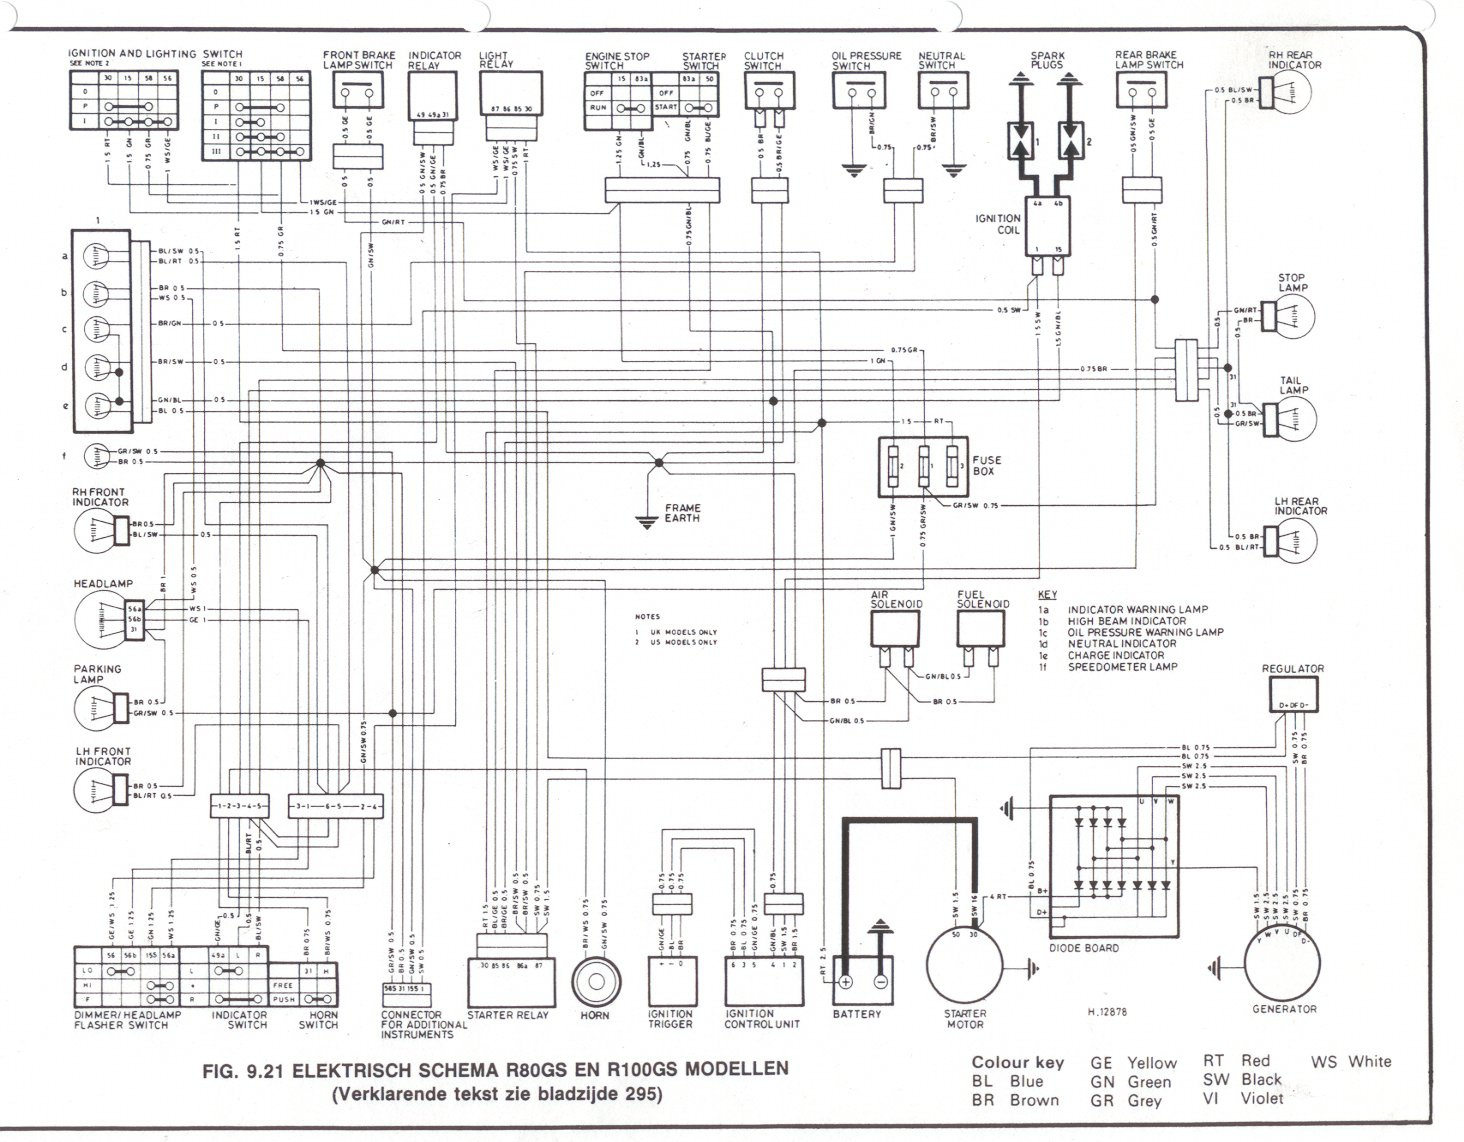 R80 100GS Schematic bmw r100 info thiel org za bmw r100rs gauge wiring diagram at sewacar.co